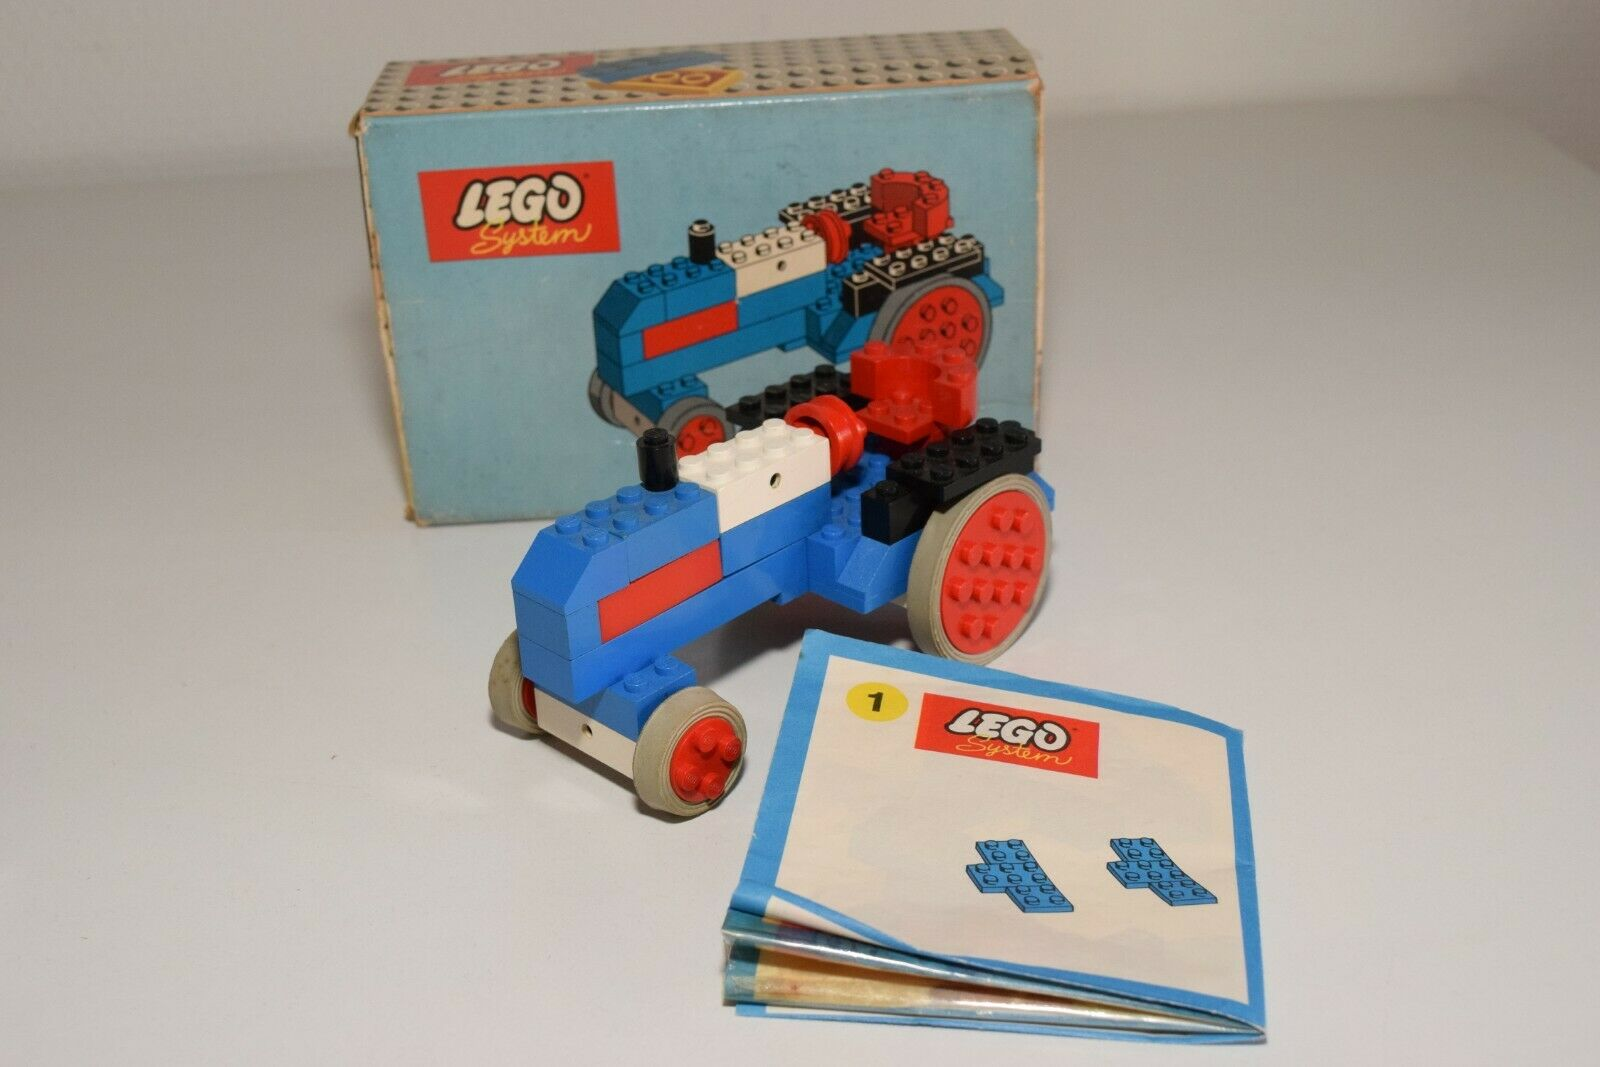 Y VINTAGE LEGO SYSTEM 316 TRACTOR TRACTOR TRACTOR blueE EXCELLENT BOXED 0993b6